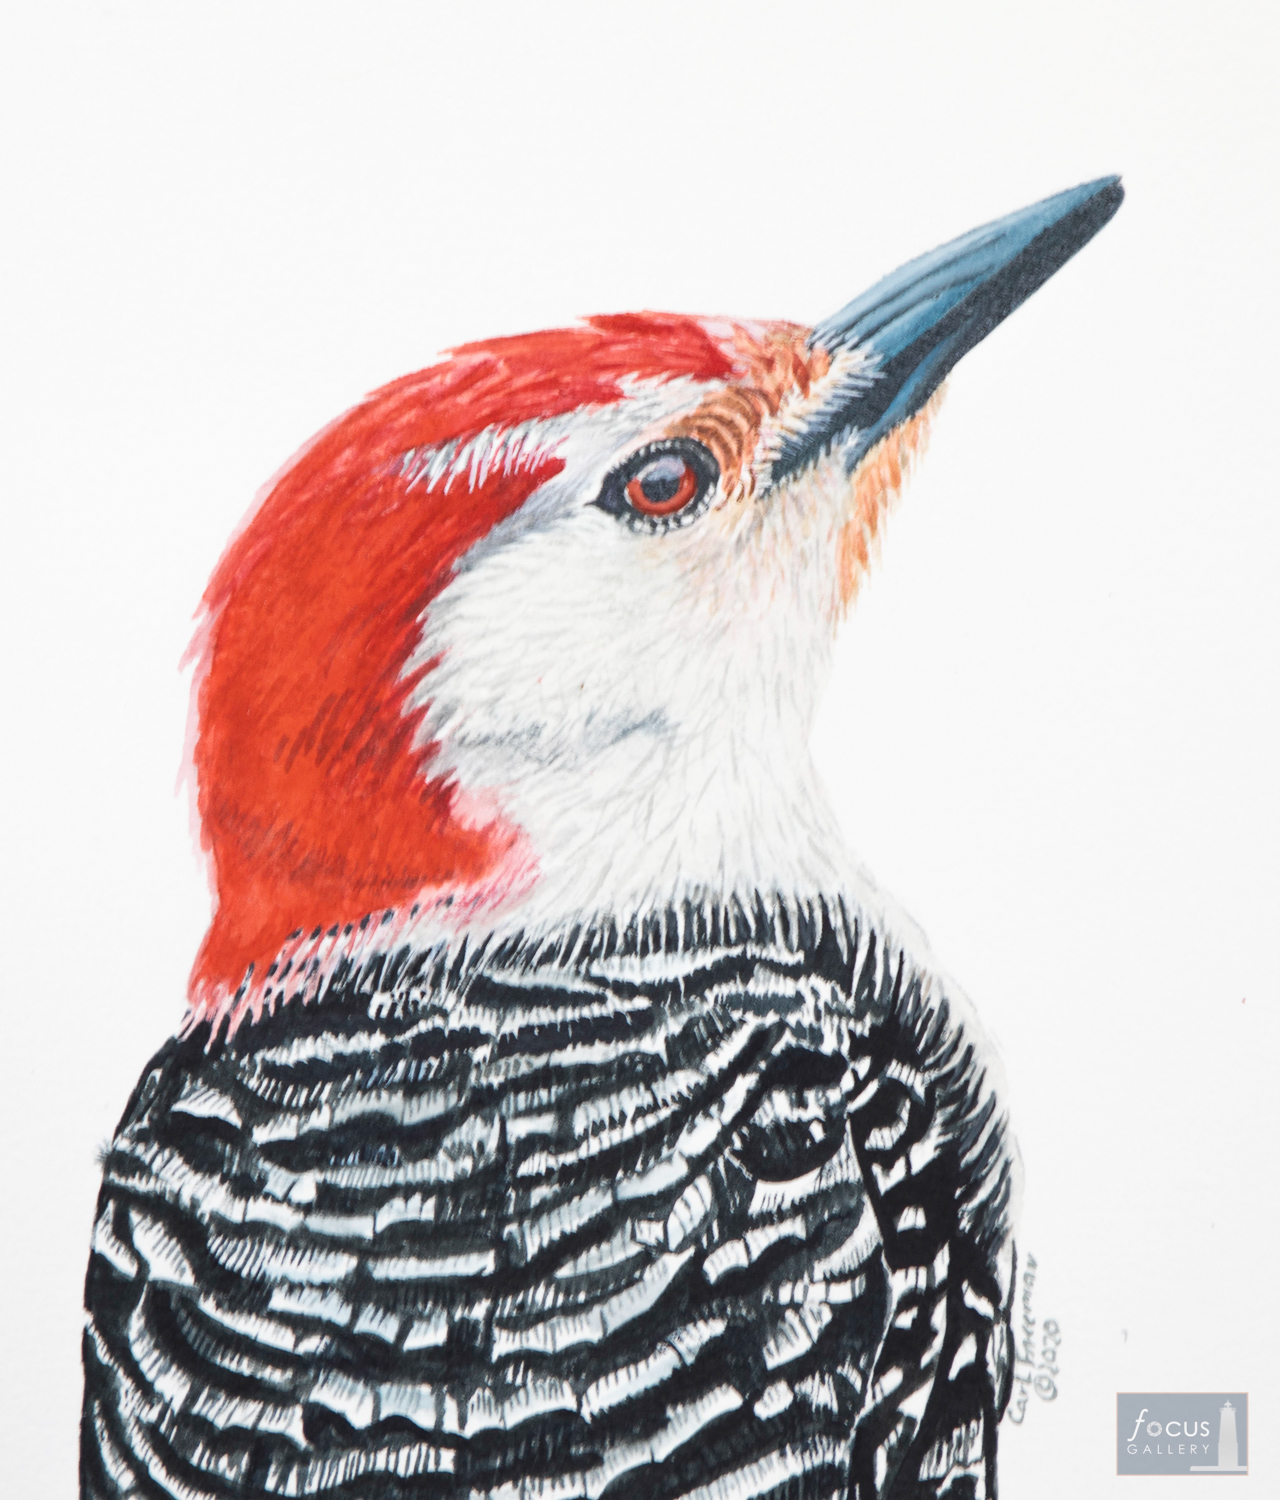 Original watercolor painting of the detail of a Red-bellied Woodpecker.